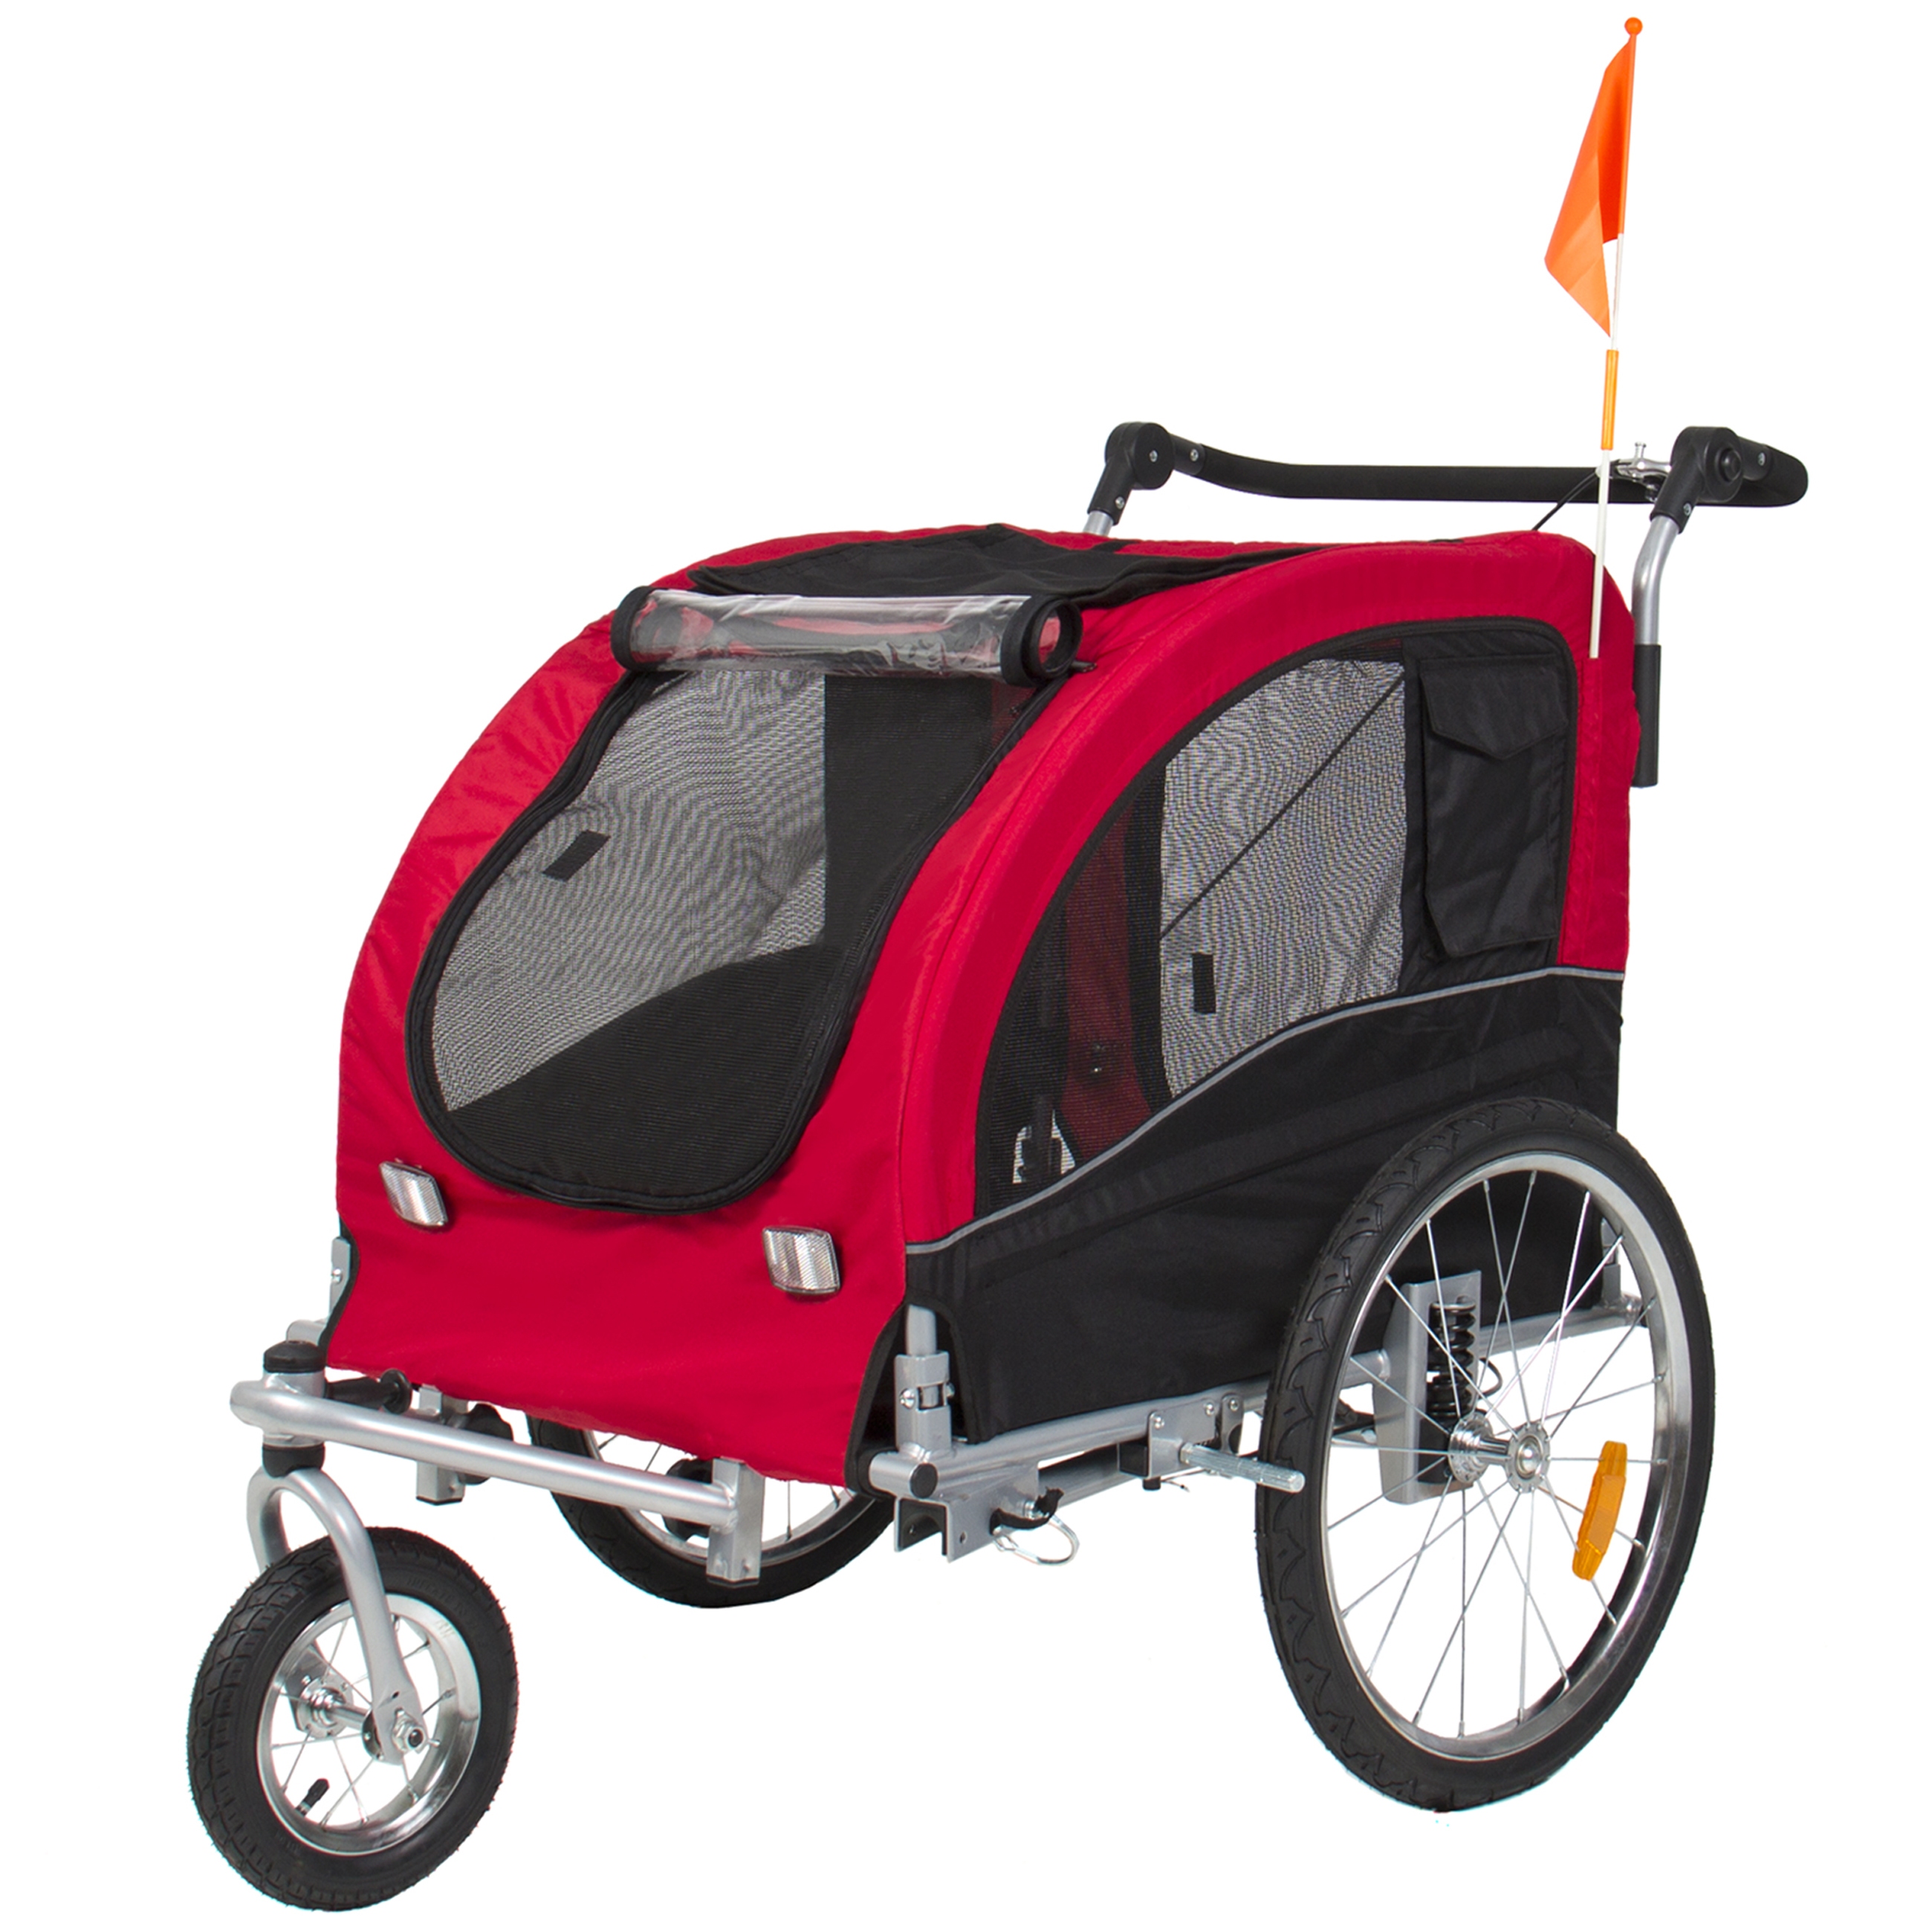 2 IN 1 Pet Dog Bike Trailer Bicycle Trailer Stroller Jogging w/ Suspension Red